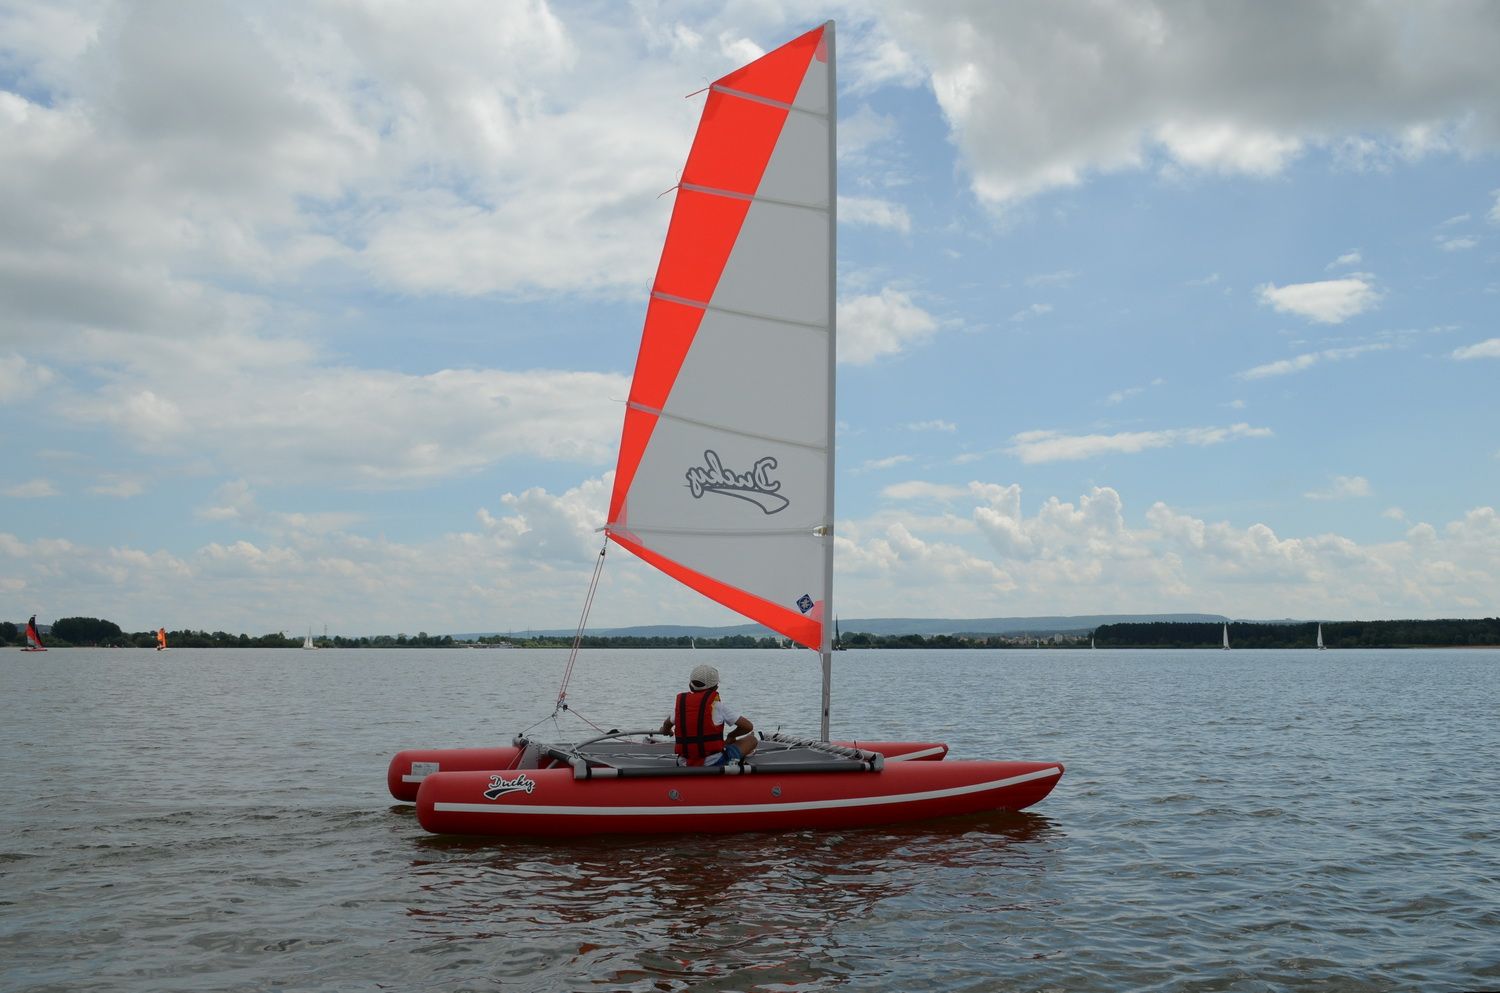 Inflatable sailing catamaran Ducky13